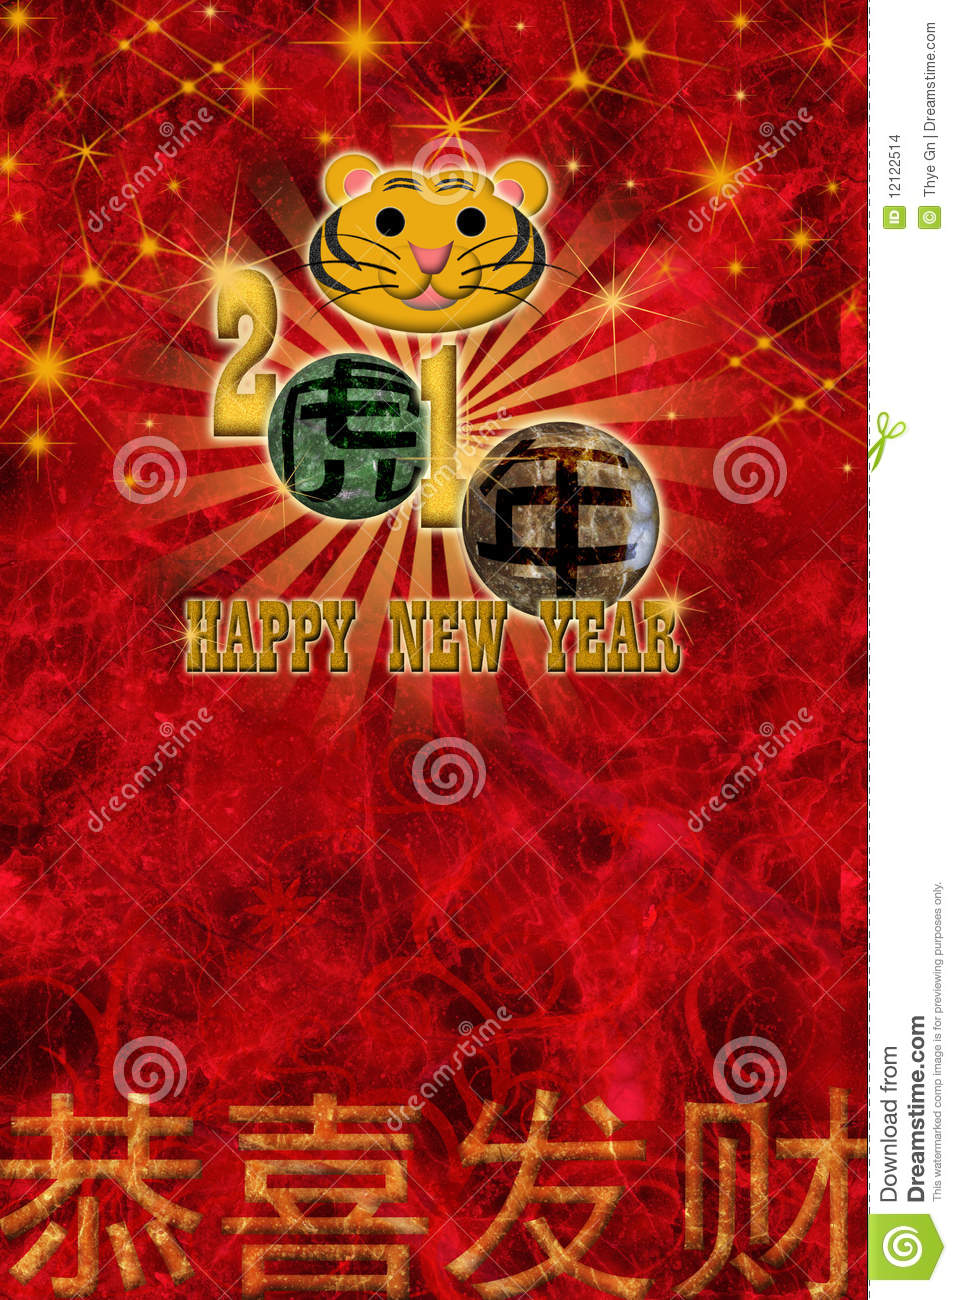 Chinese new year 2010 stock illustration illustration of gong chinese new year 2010 with tiger and mandarin cantonese greetings m4hsunfo